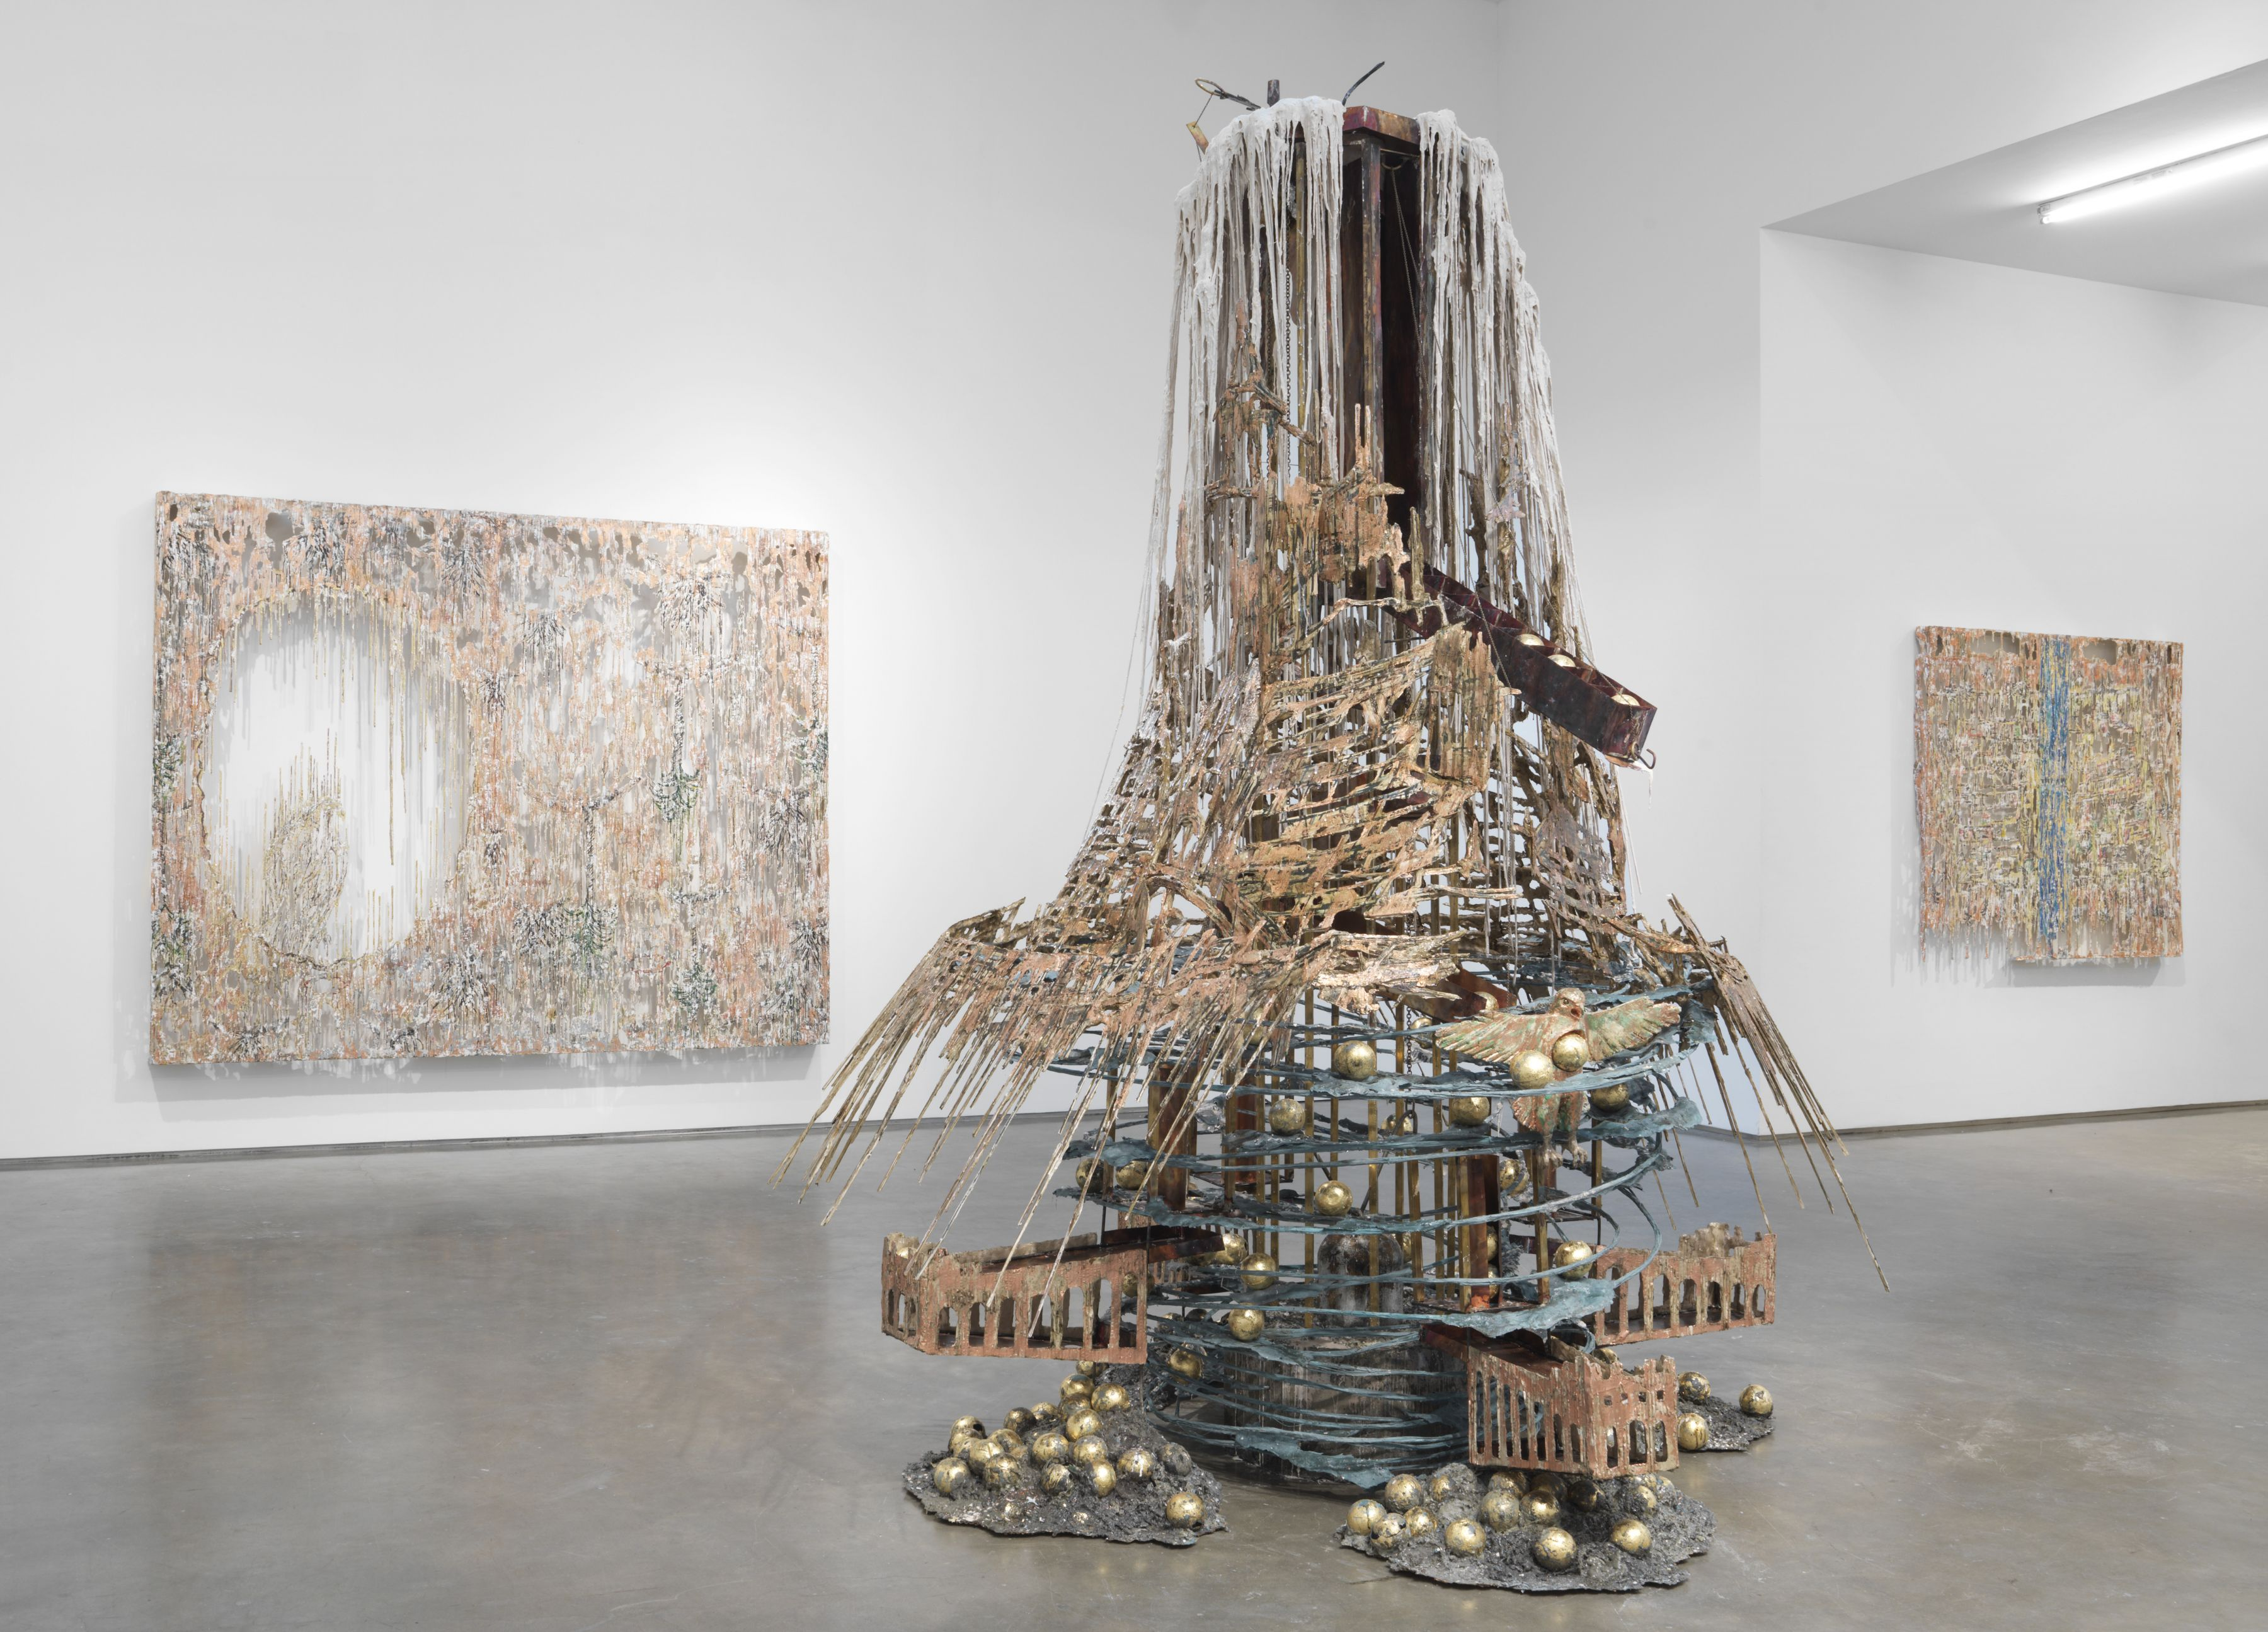 an installation view of an exhibition of the artworks of Diana Al-Hadid